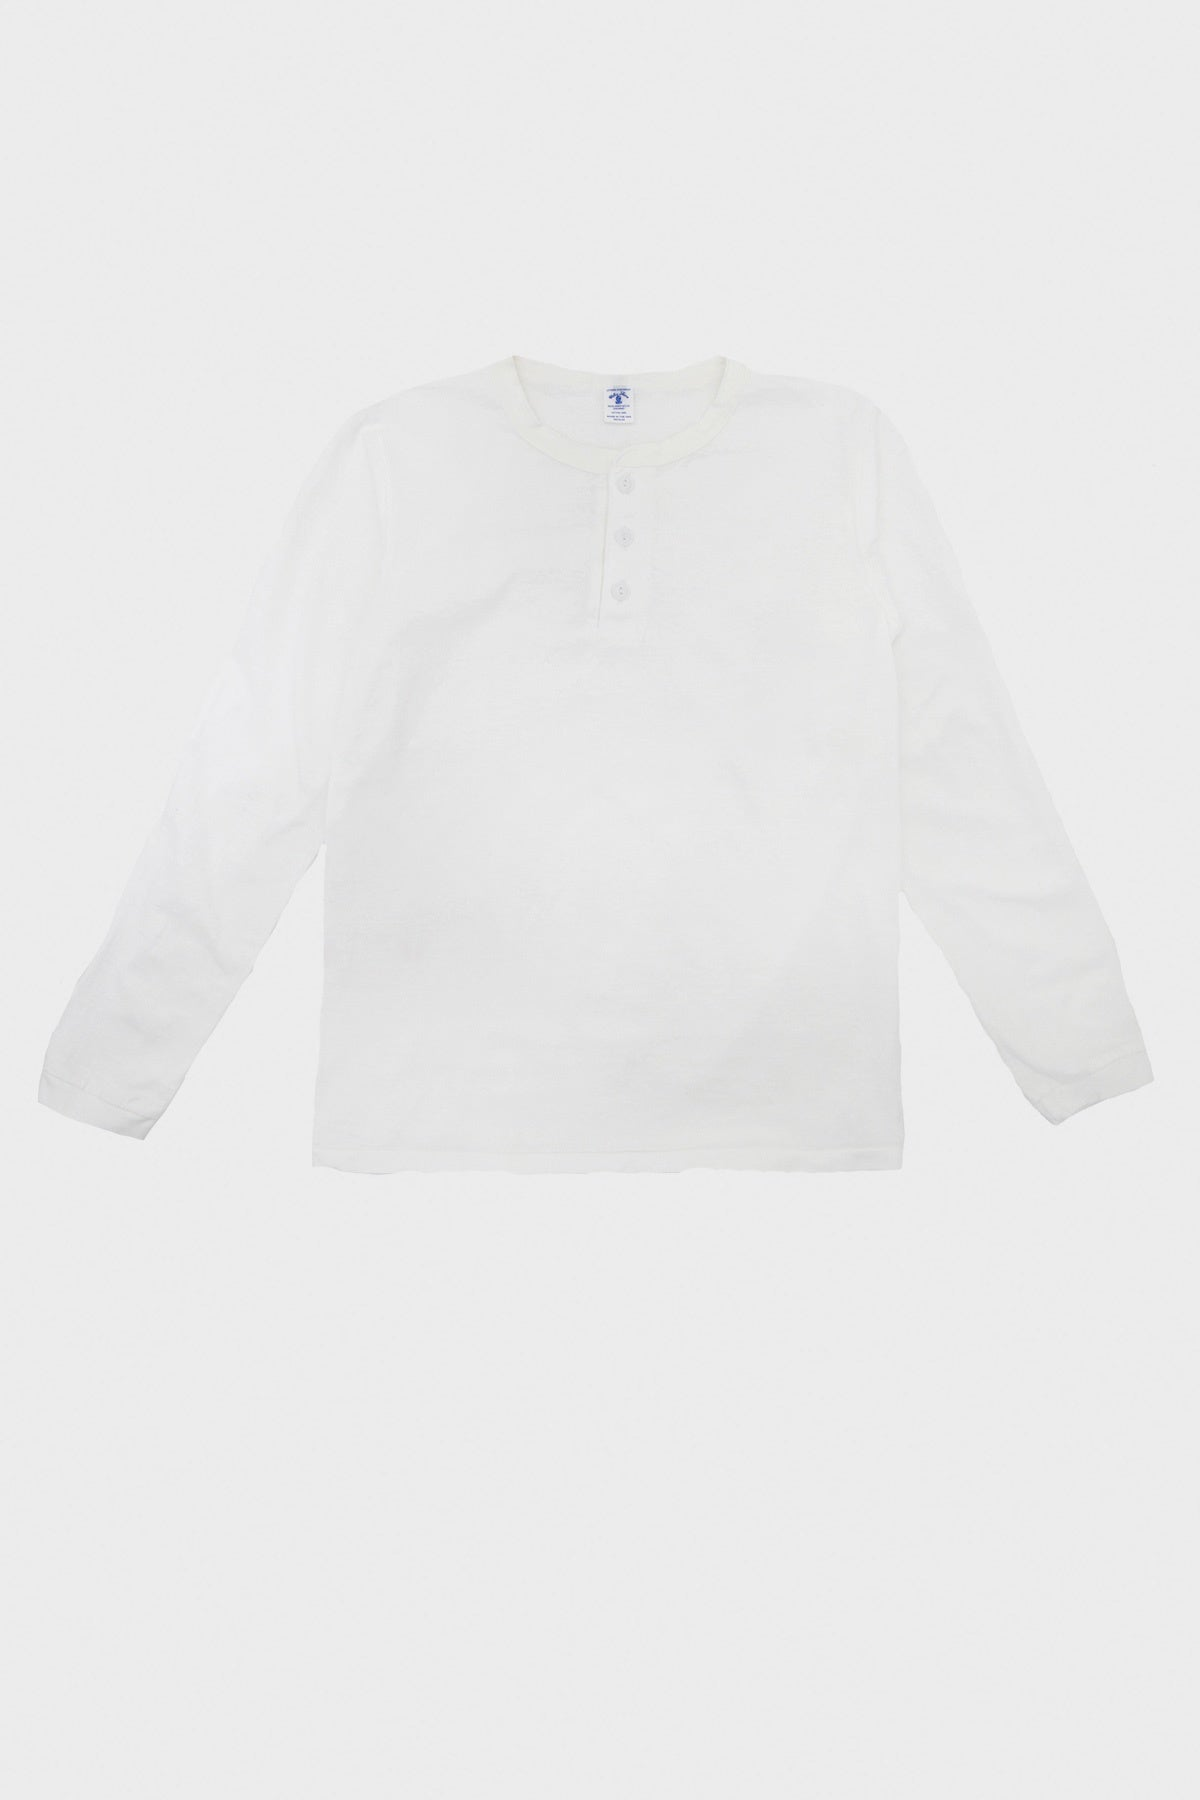 velva sheen Tubular Knit Henley - White